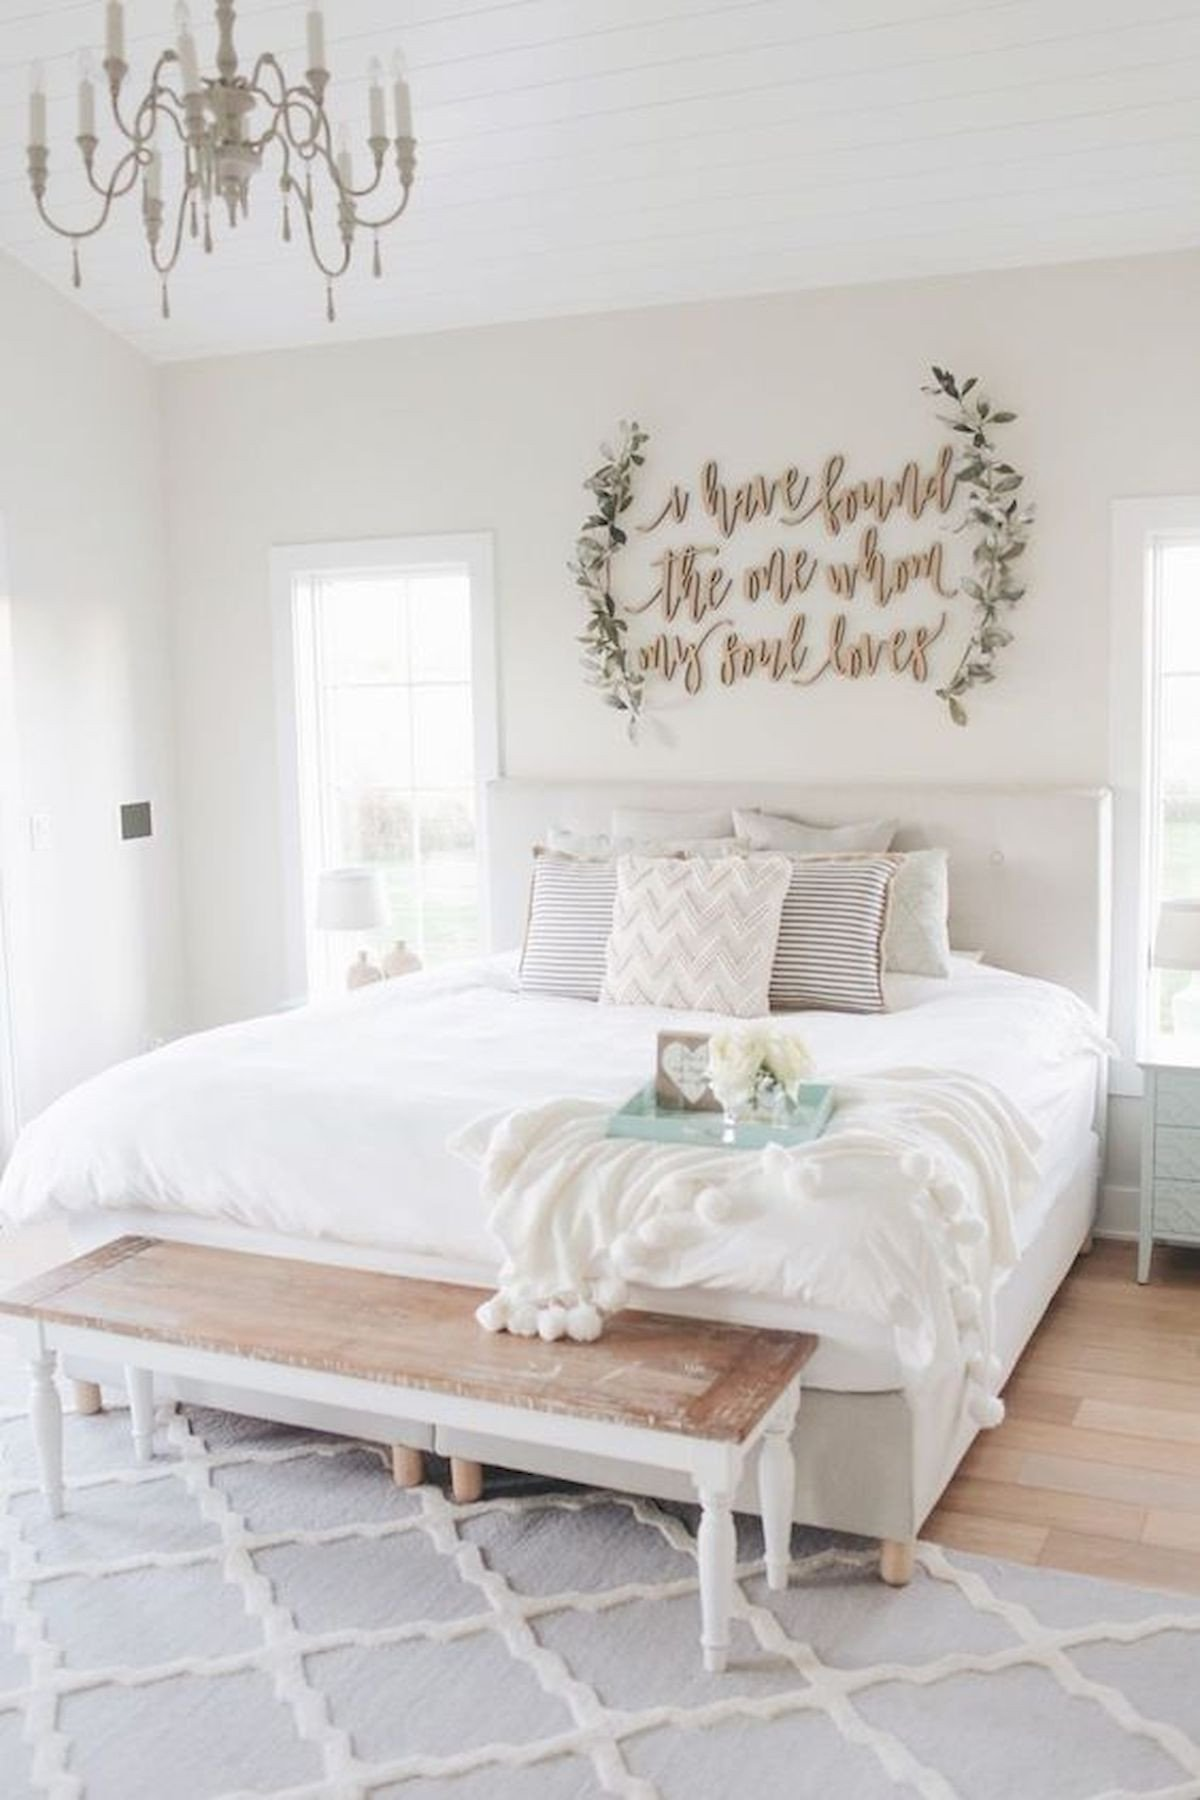 53 Best Farmhouse Wall Decor Ideas for bedroom Ideaboz